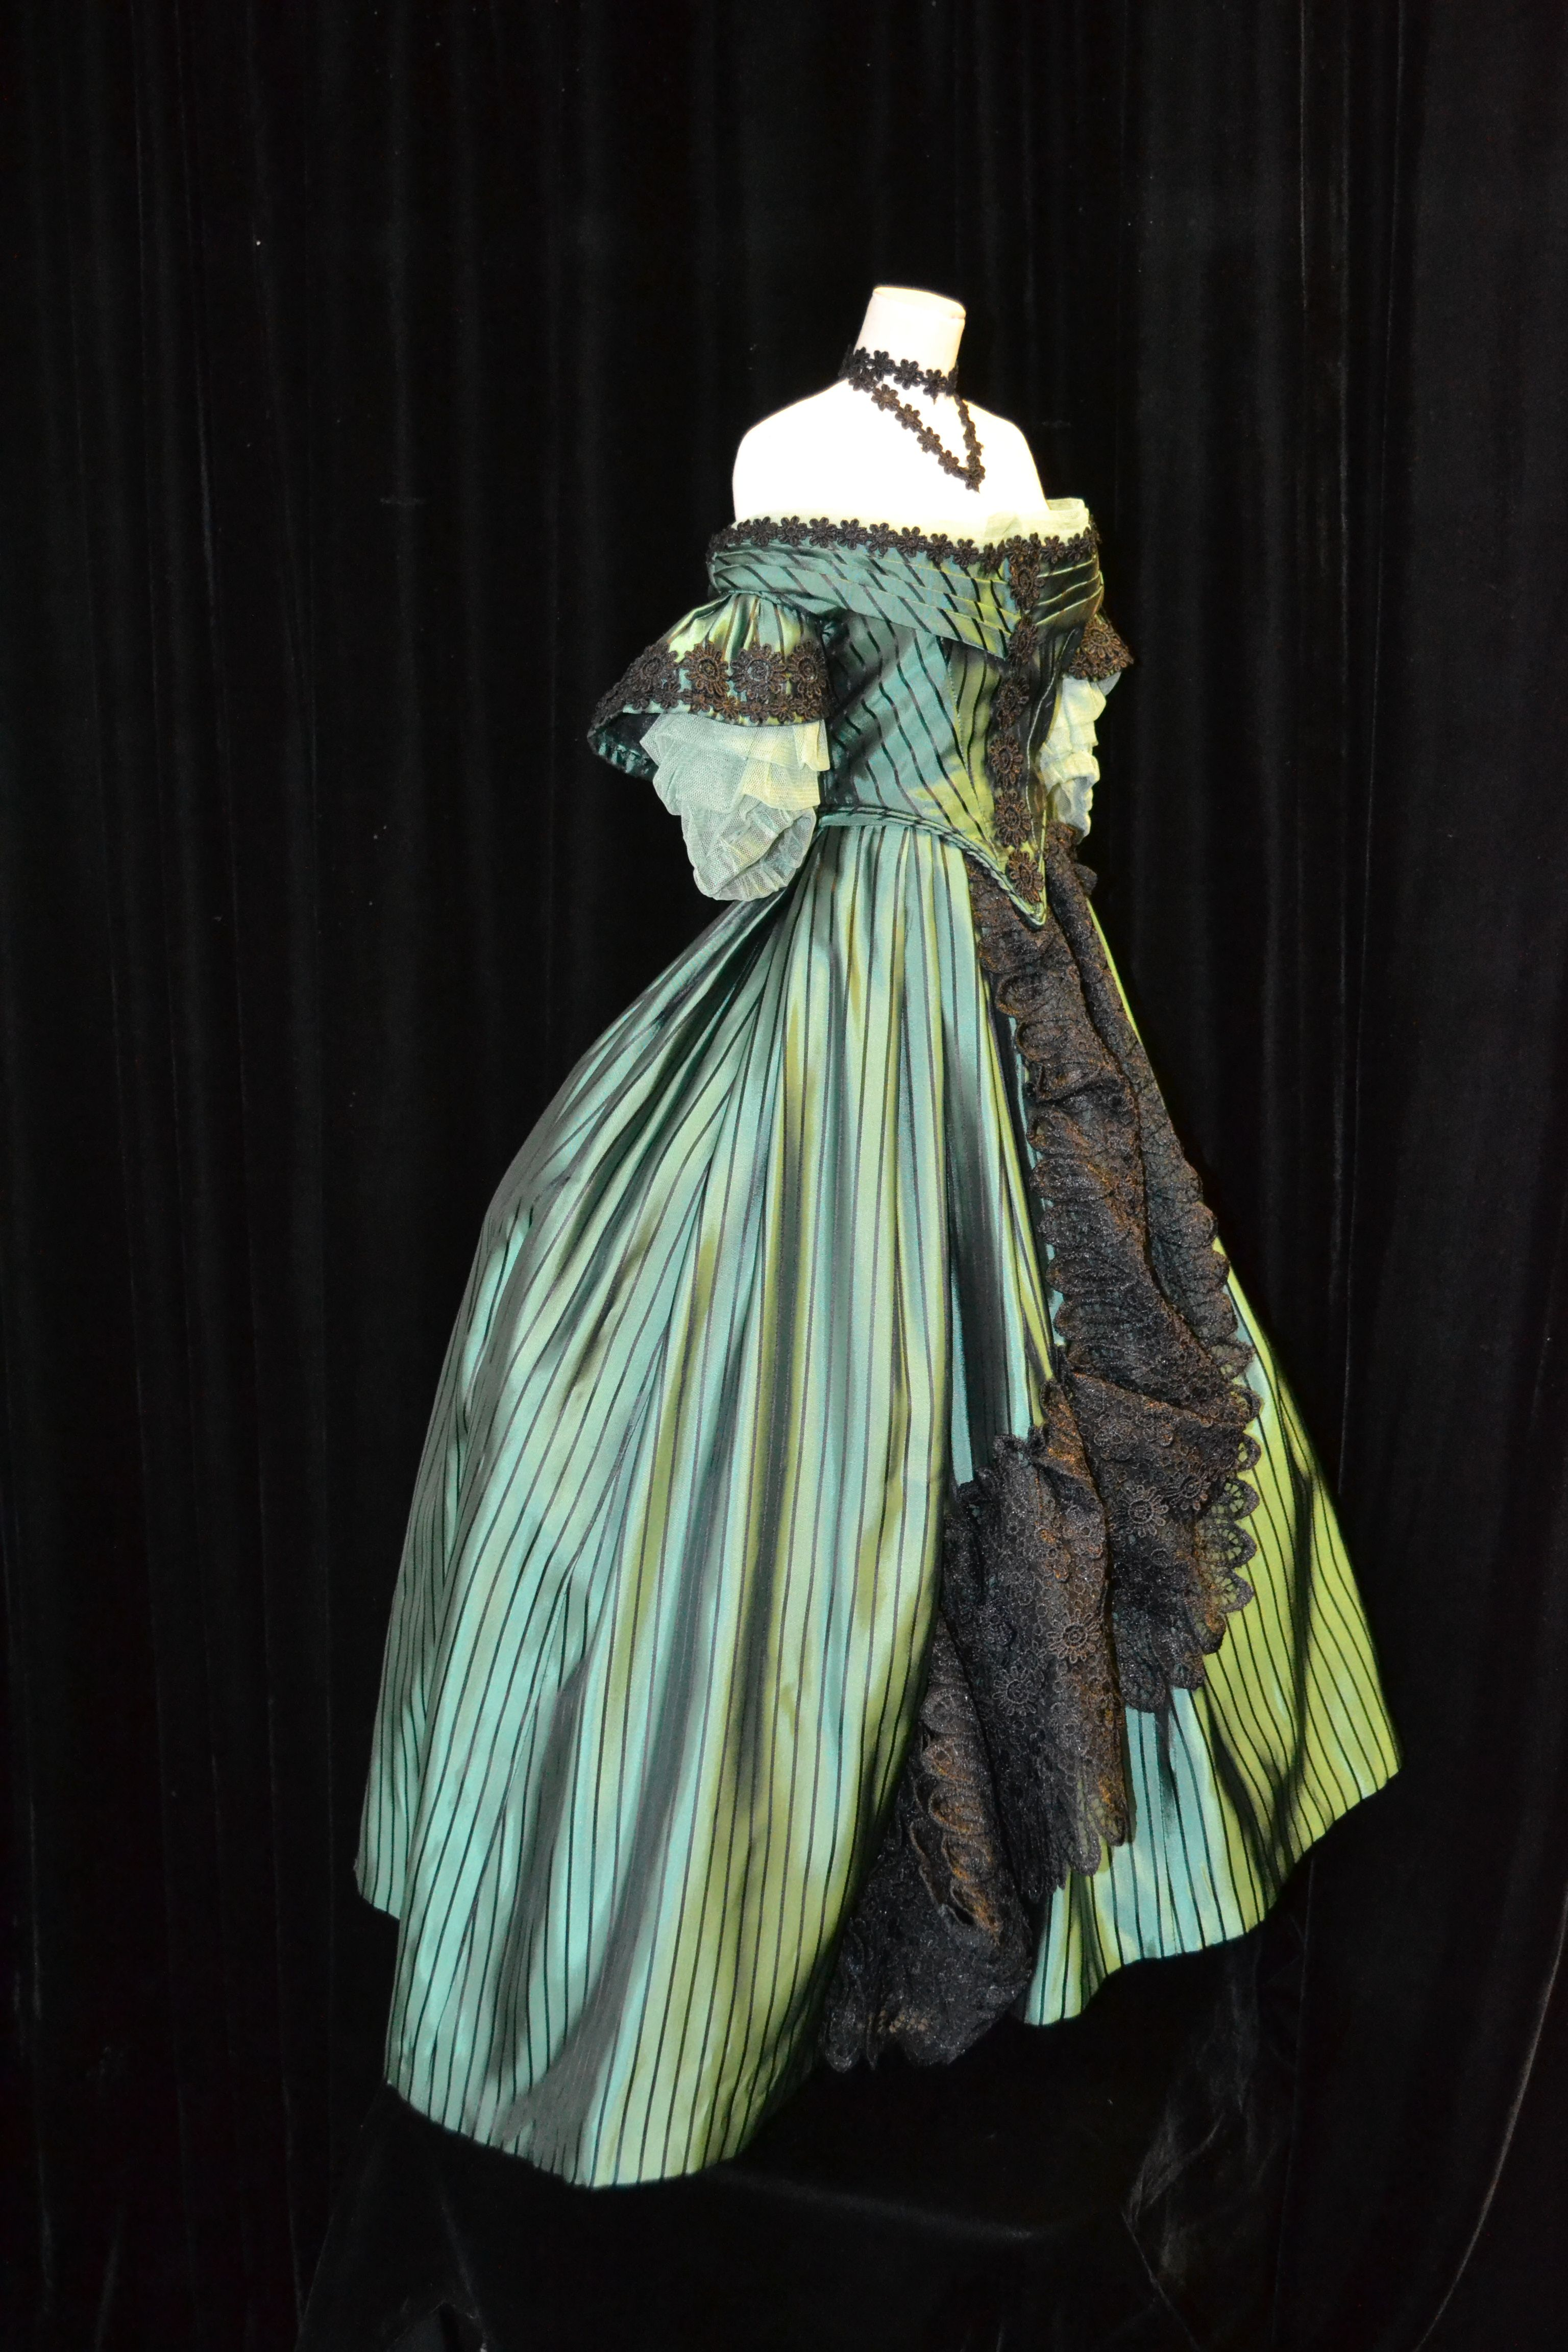 b96f7f1d7e37 1861-1864 Janet Arnold Dress. This gown was actually made to half ...